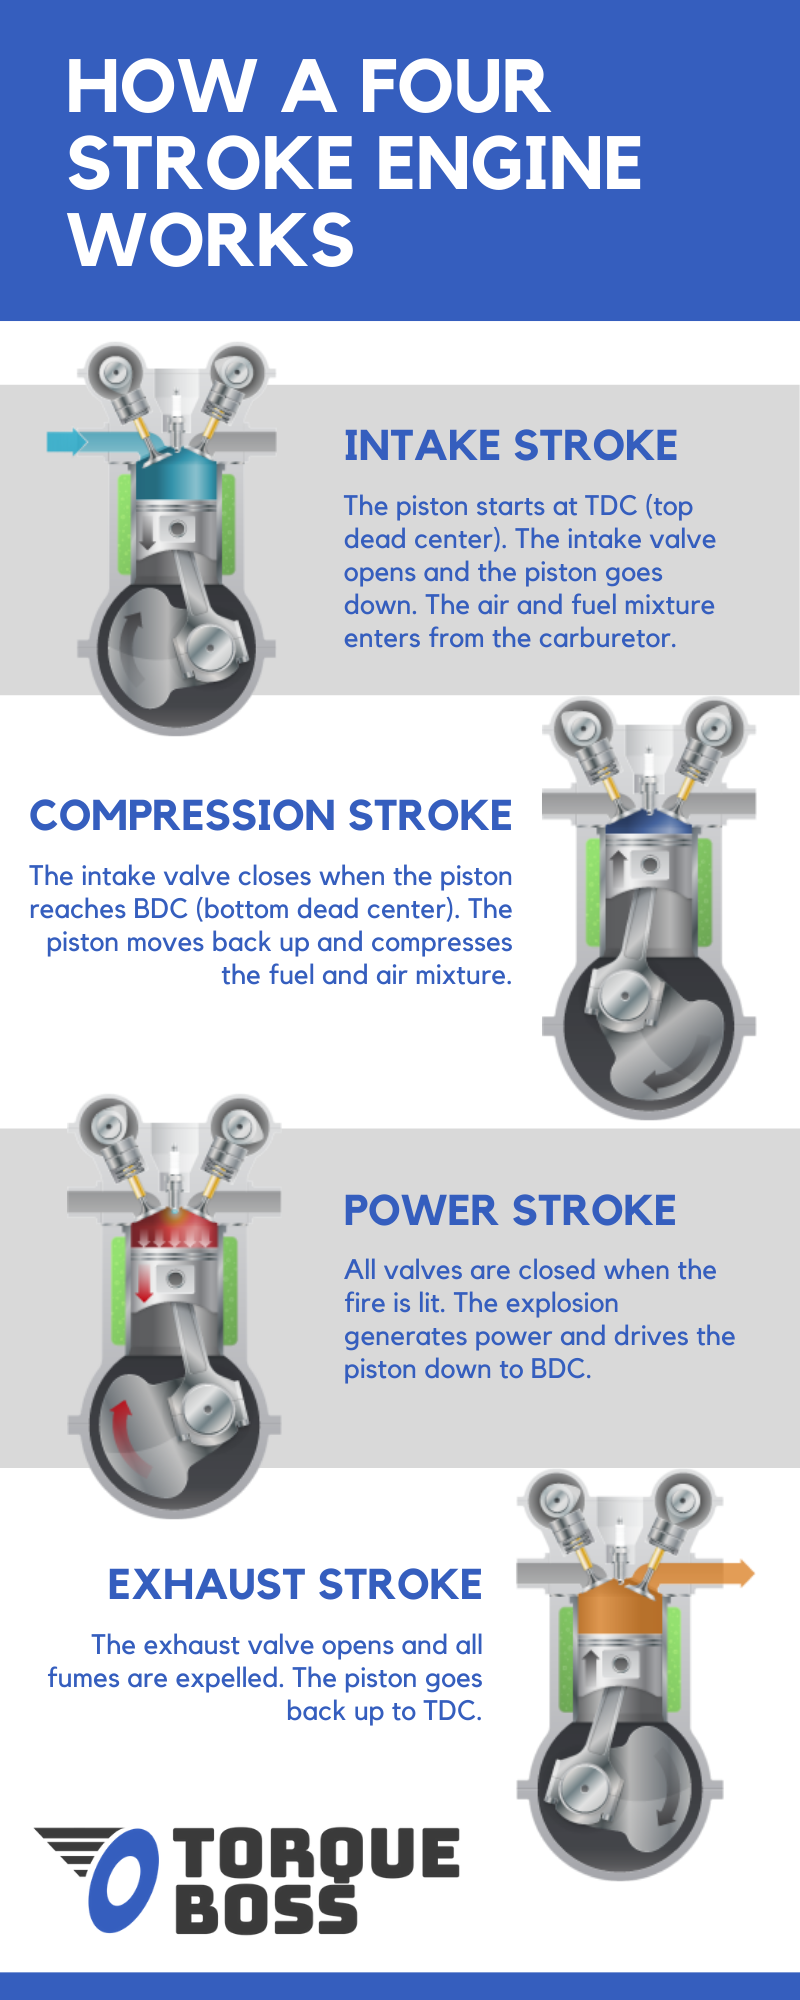 How A Four Stroke Engine Works